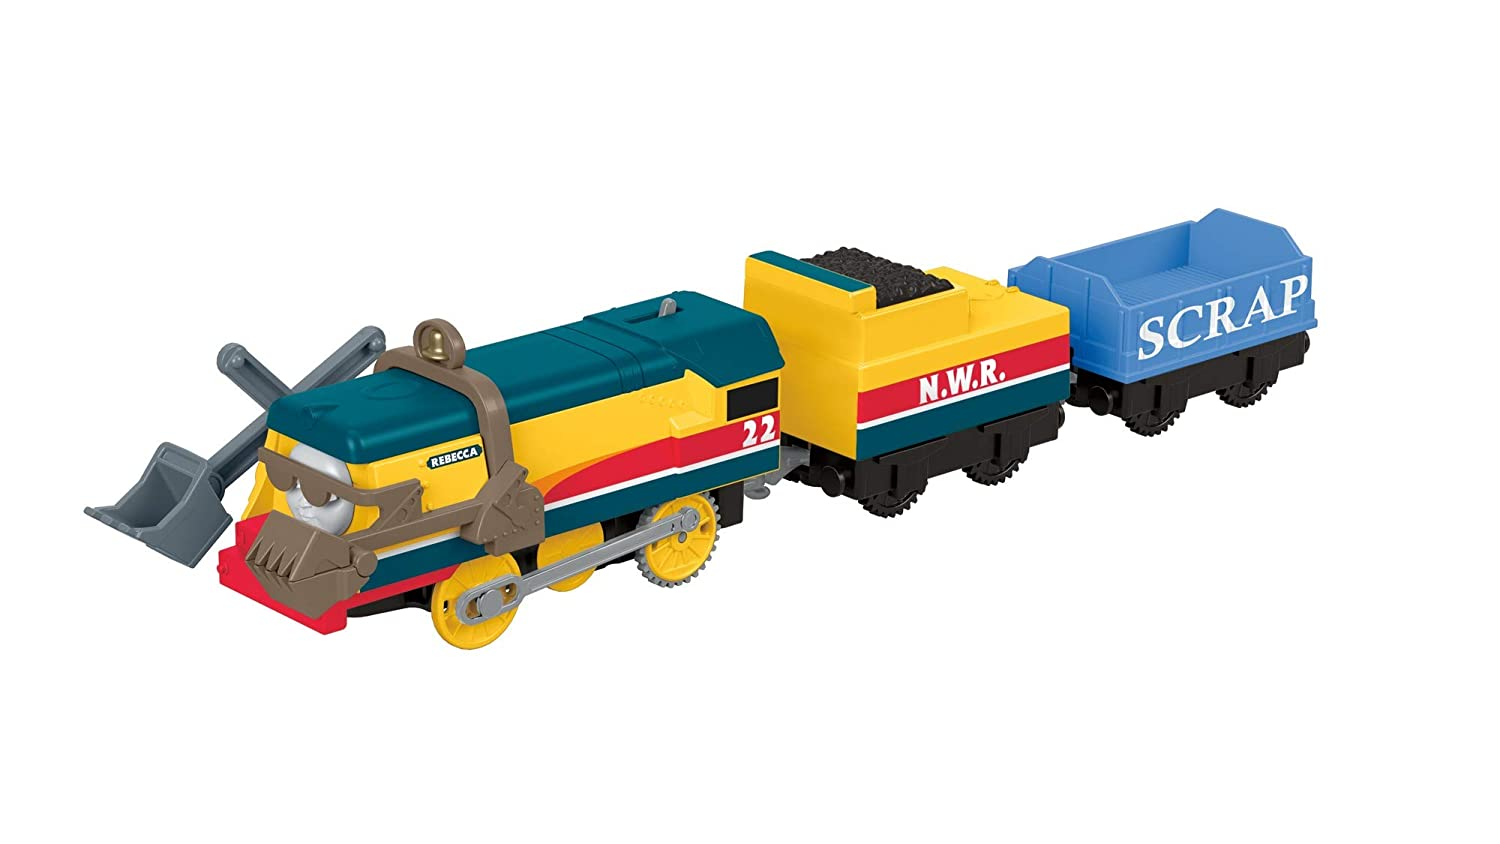 Amazon.com: Thomas & Friends Fisher-Price Trackmaster, Rebecca, Multicolor: Toys & Games